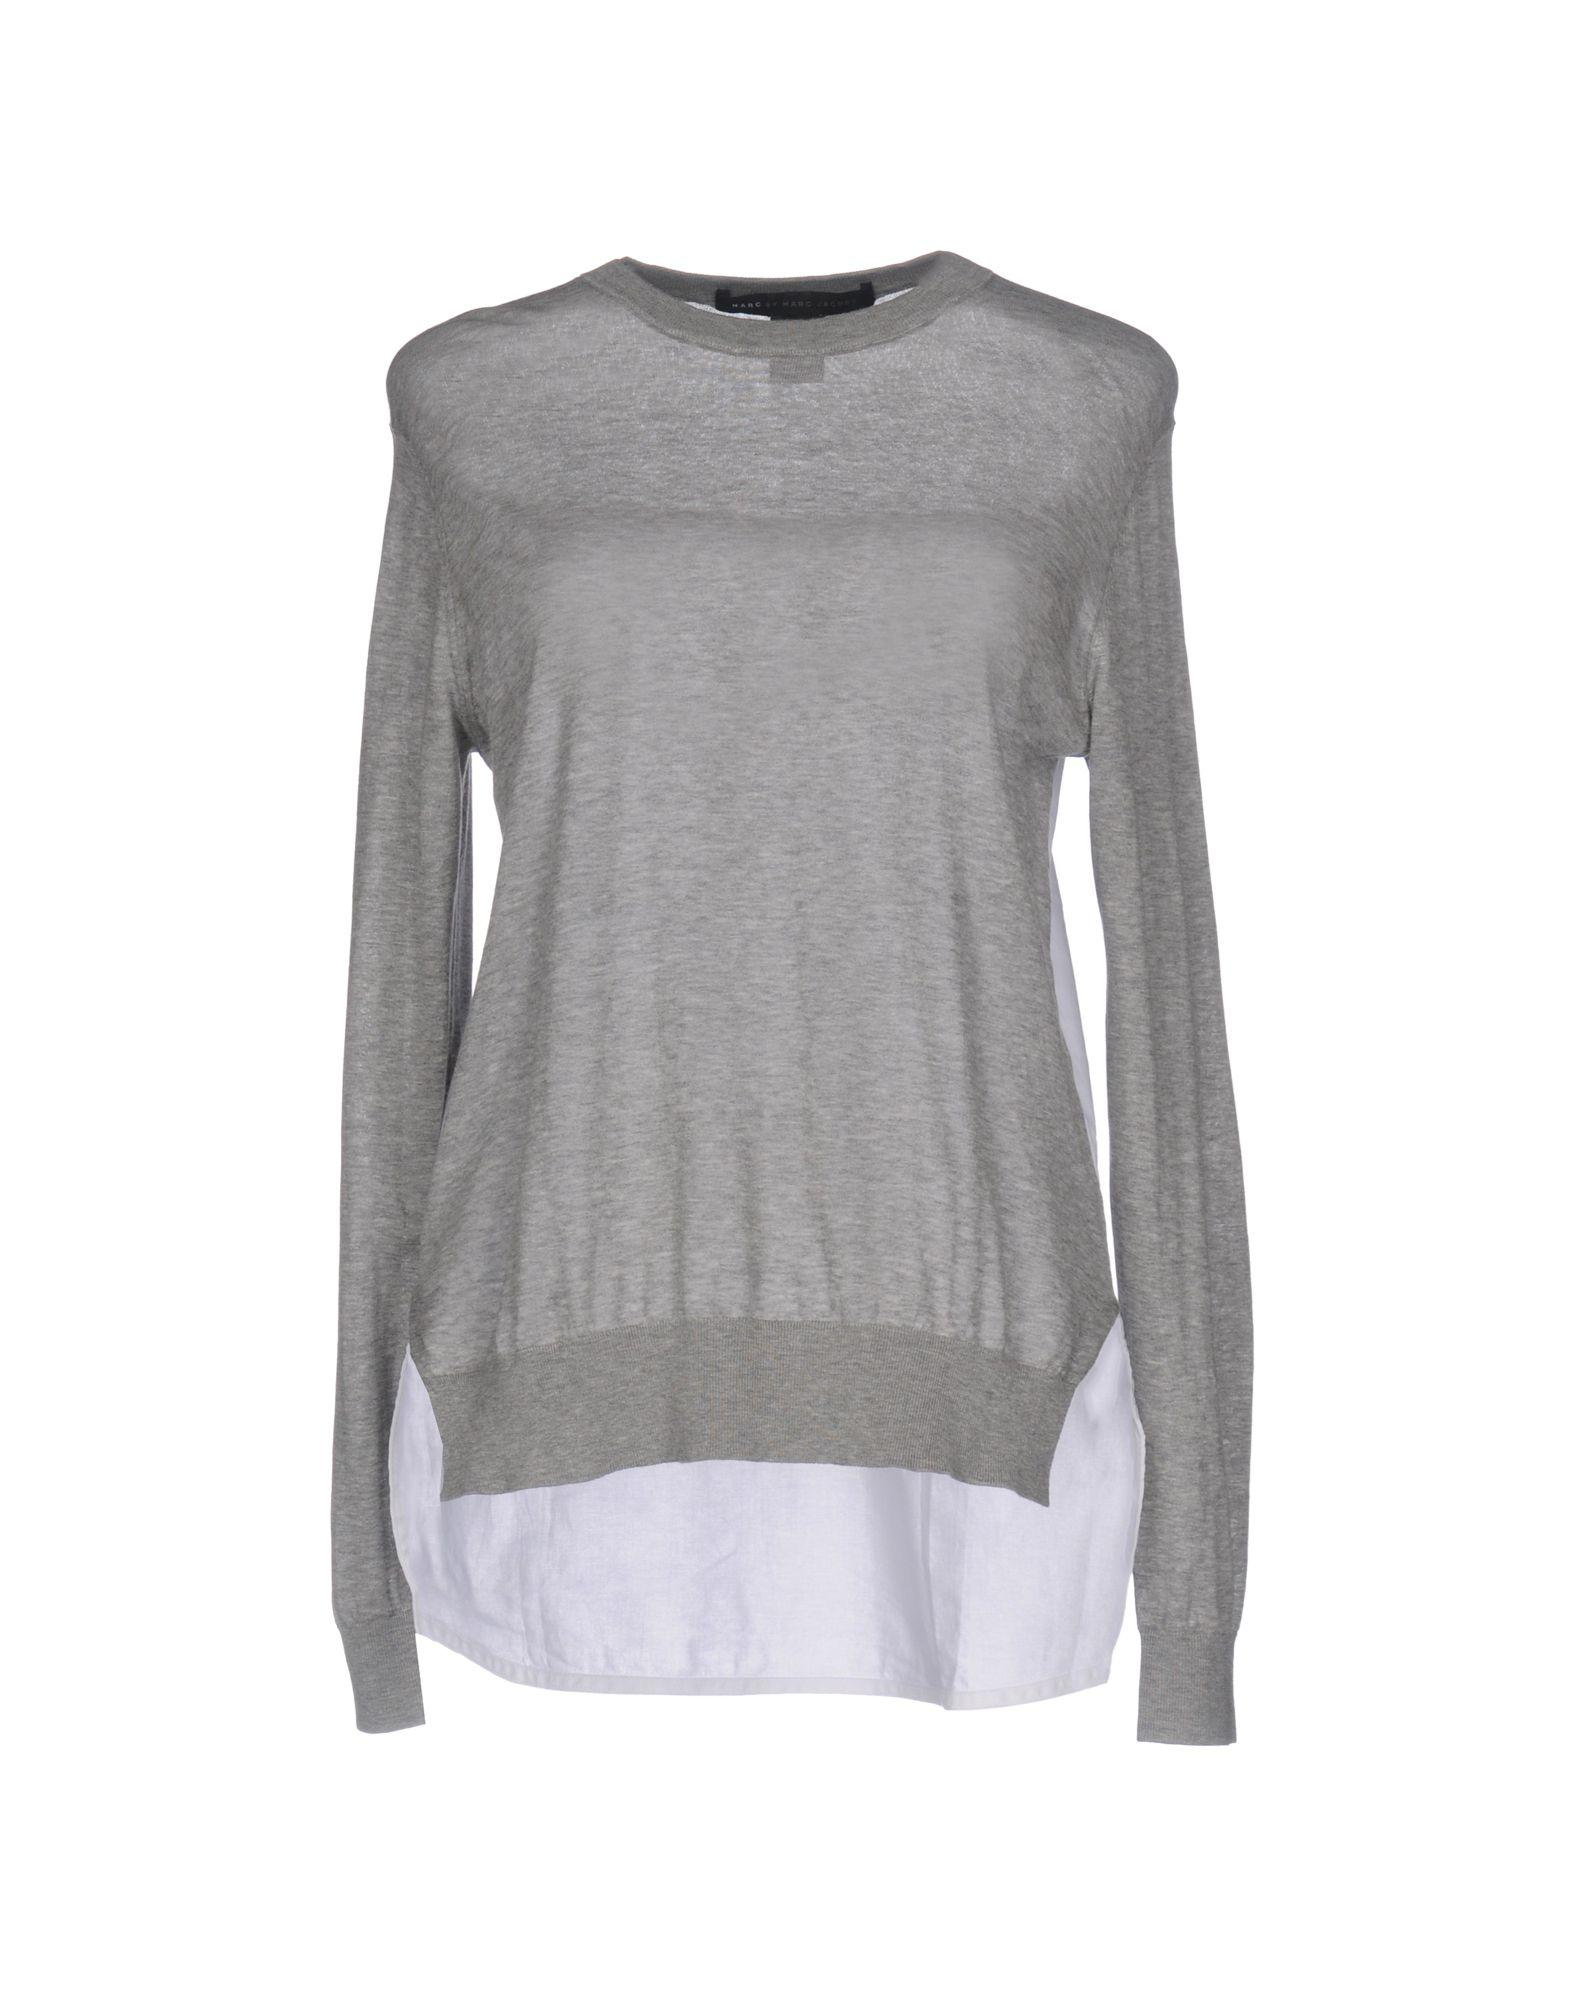 marc by marc jacobs sweater in gray lyst. Black Bedroom Furniture Sets. Home Design Ideas